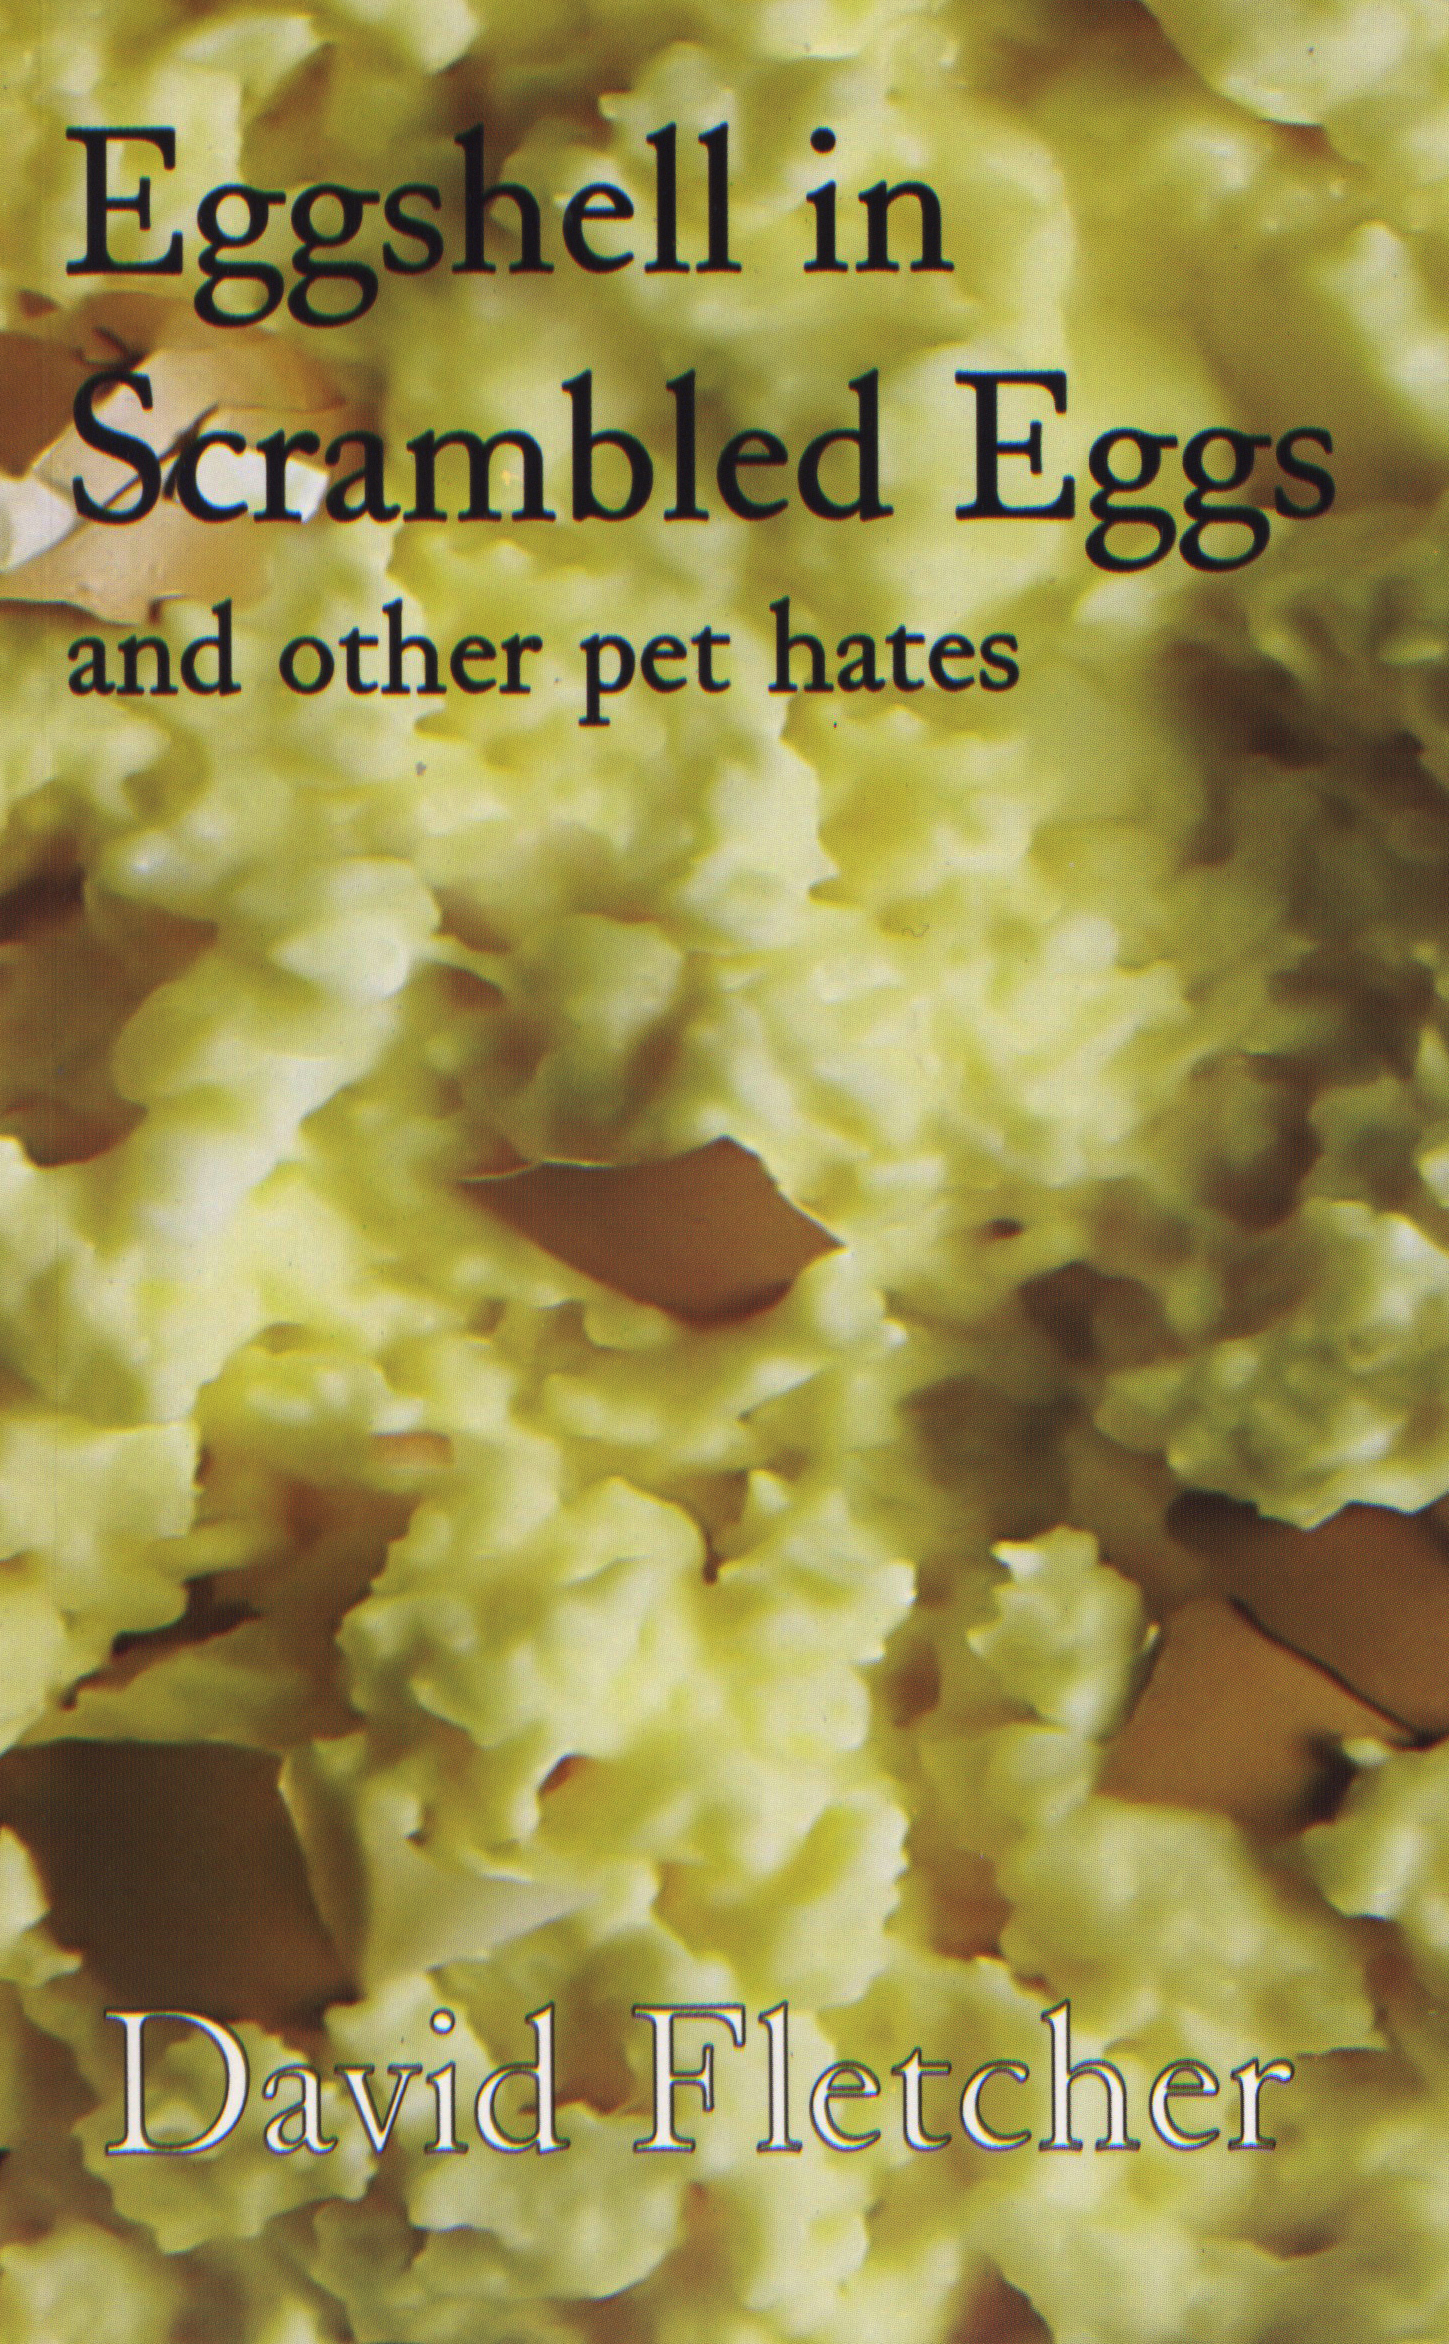 Eggshell in Scrambled Eggs and other pet hates